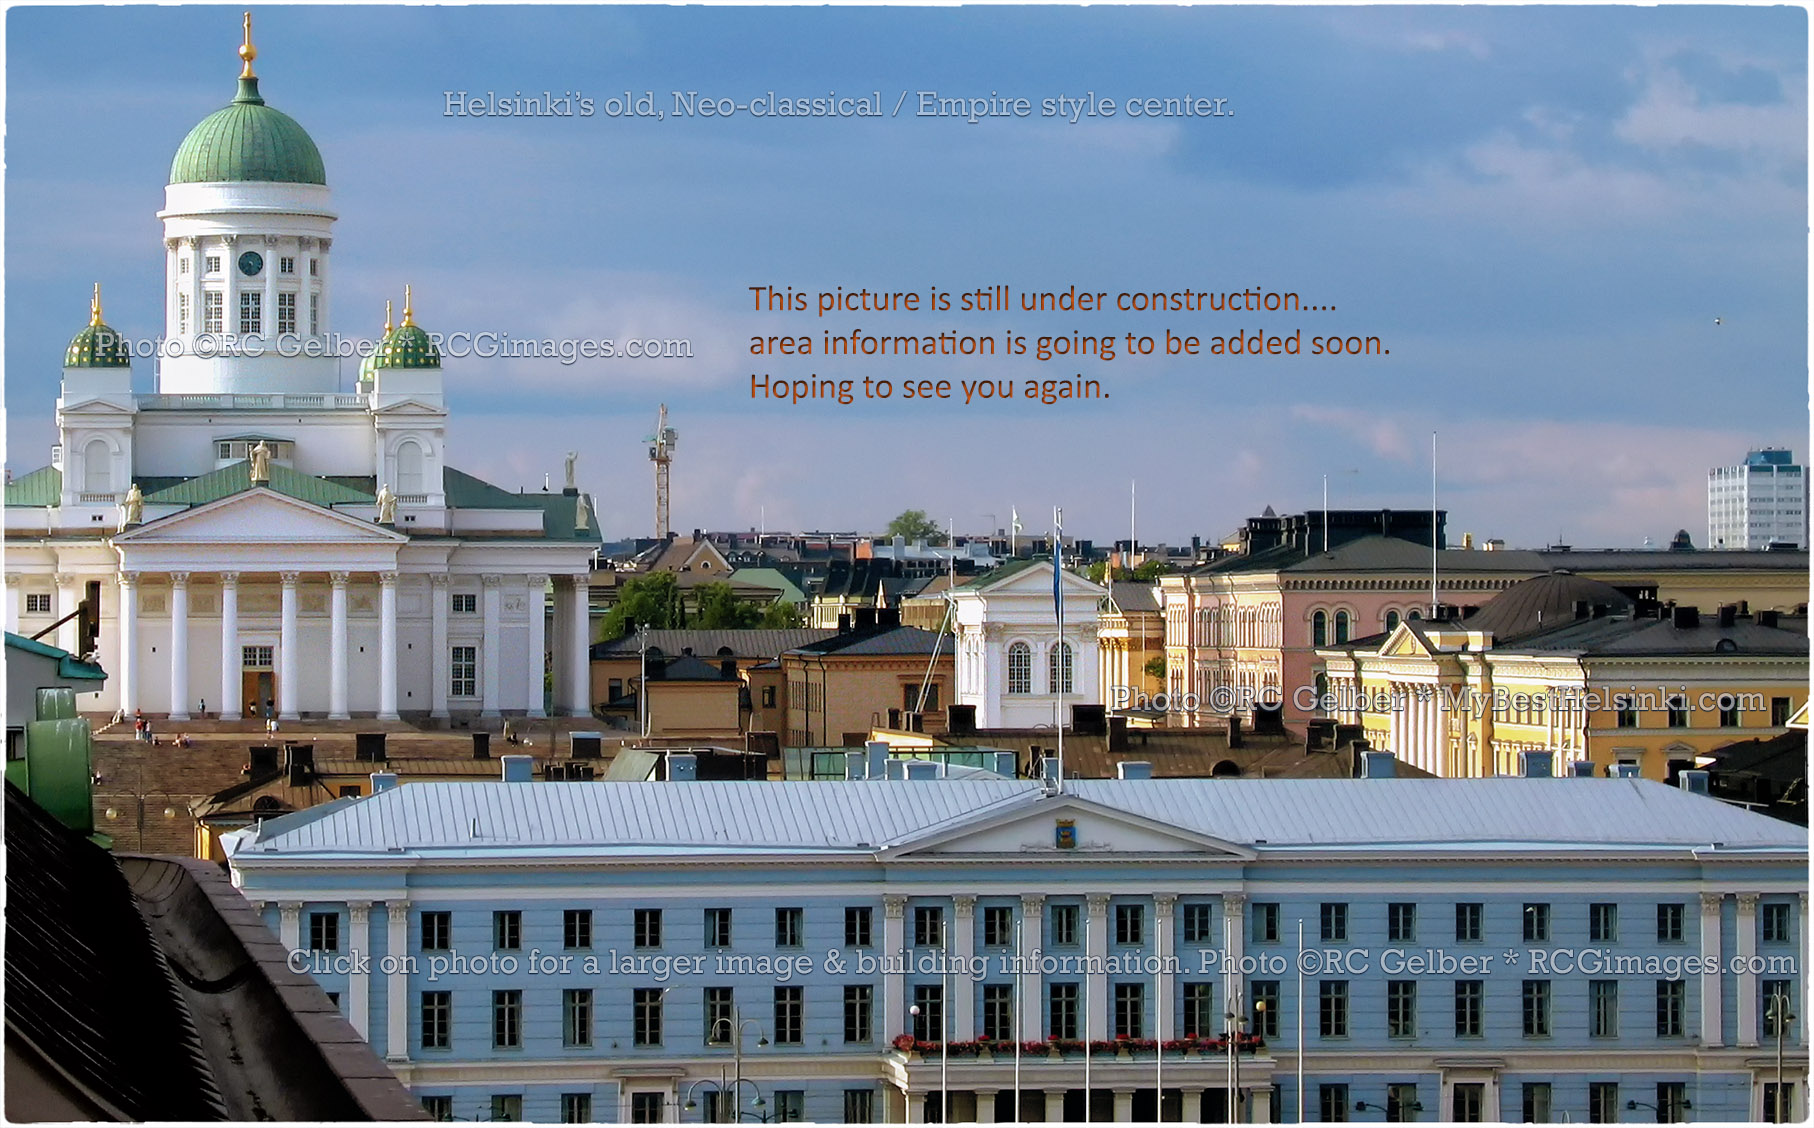 Architecture Of Helsinki: Helsinki's Old Empire Center. All Photos © RC Gelber. All